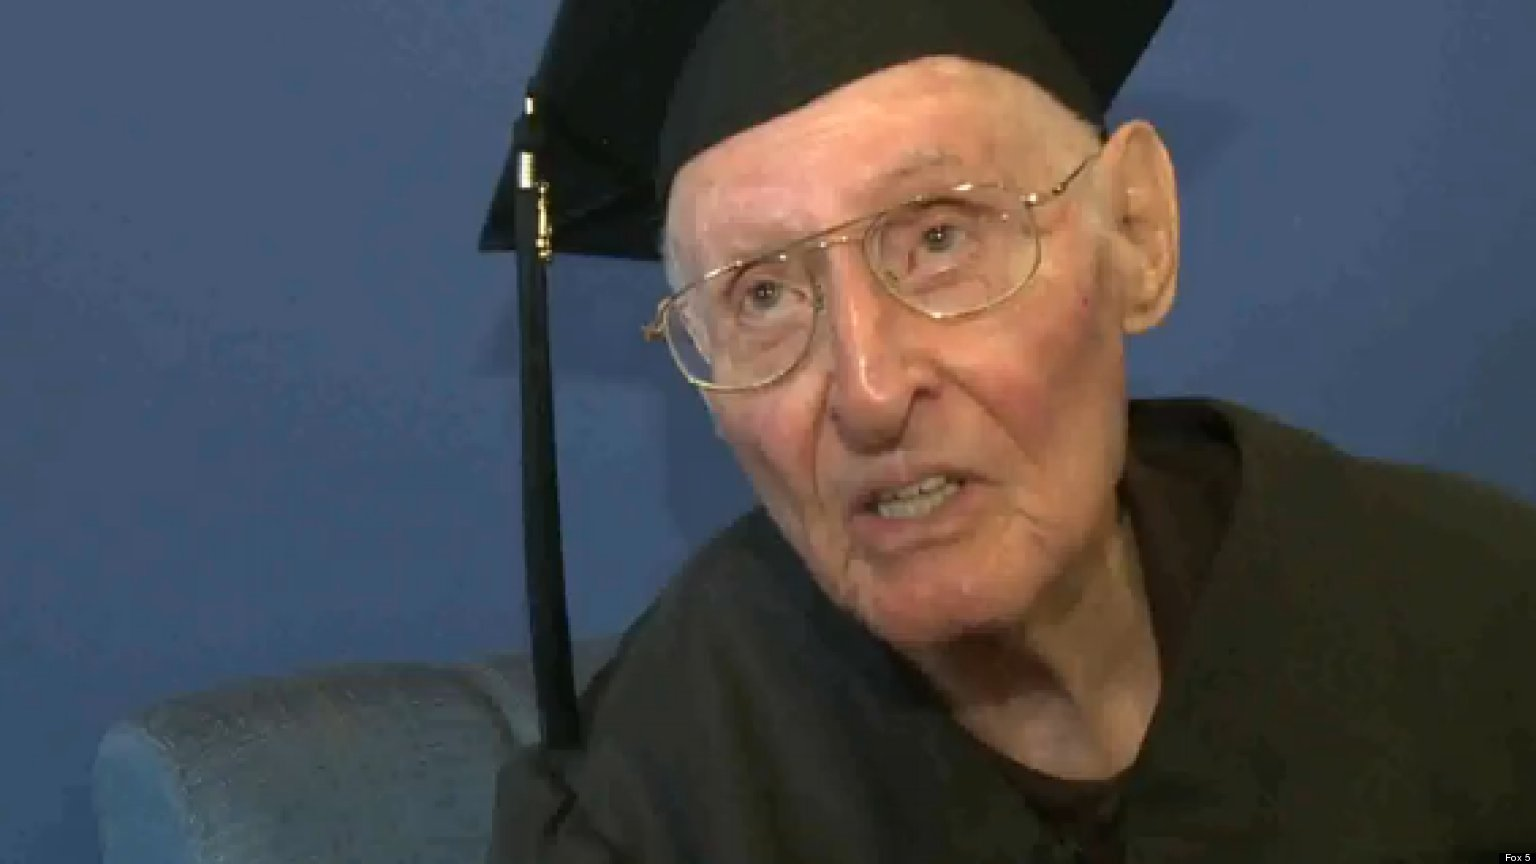 WATCH: 90-Year-Old Sets College Record